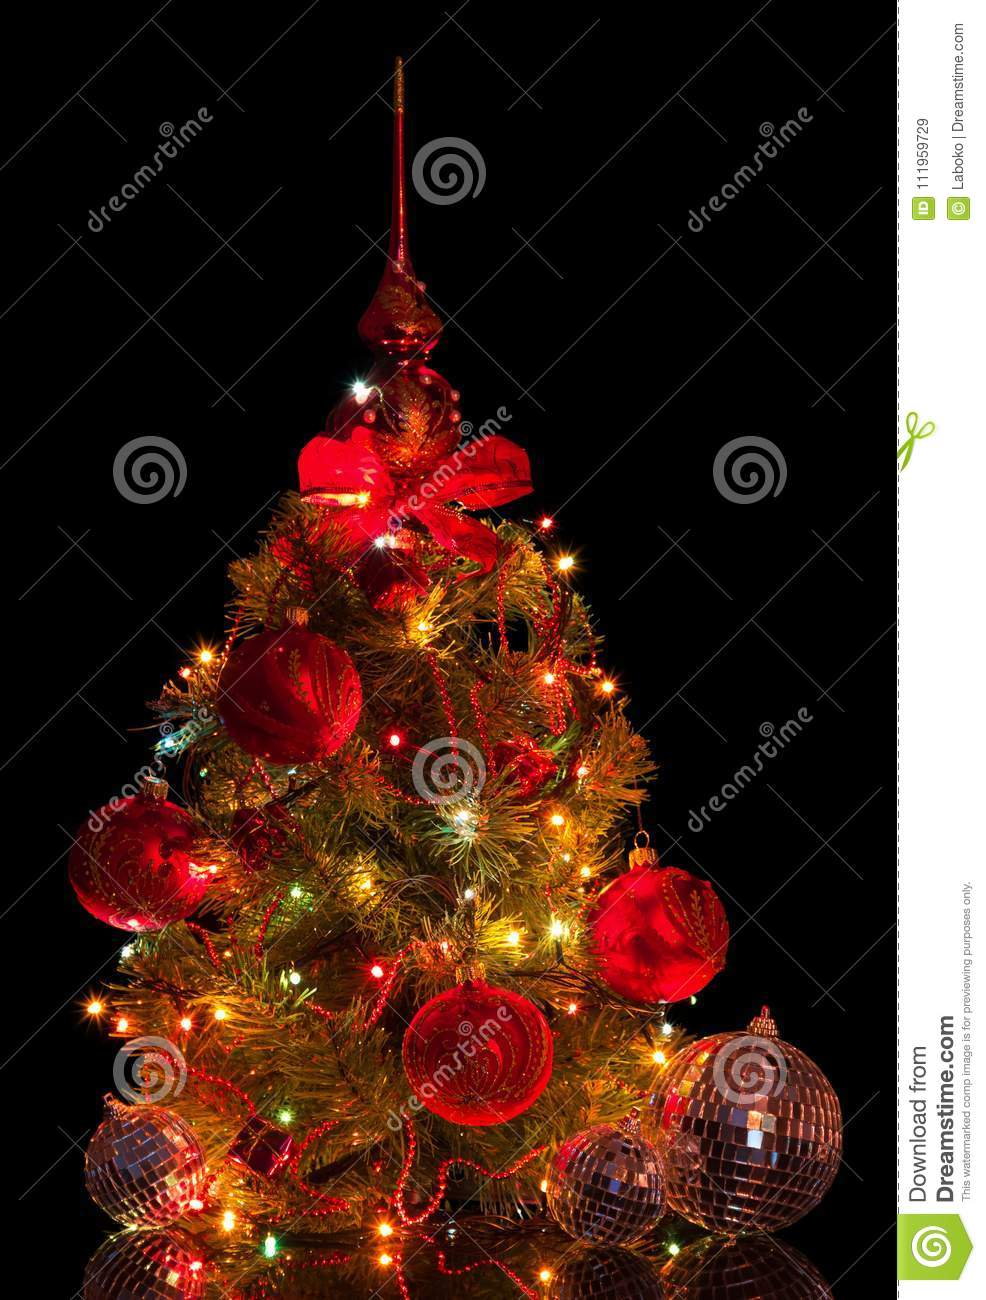 download charming small christmas tree with mirror balls beads and garland isolated on black